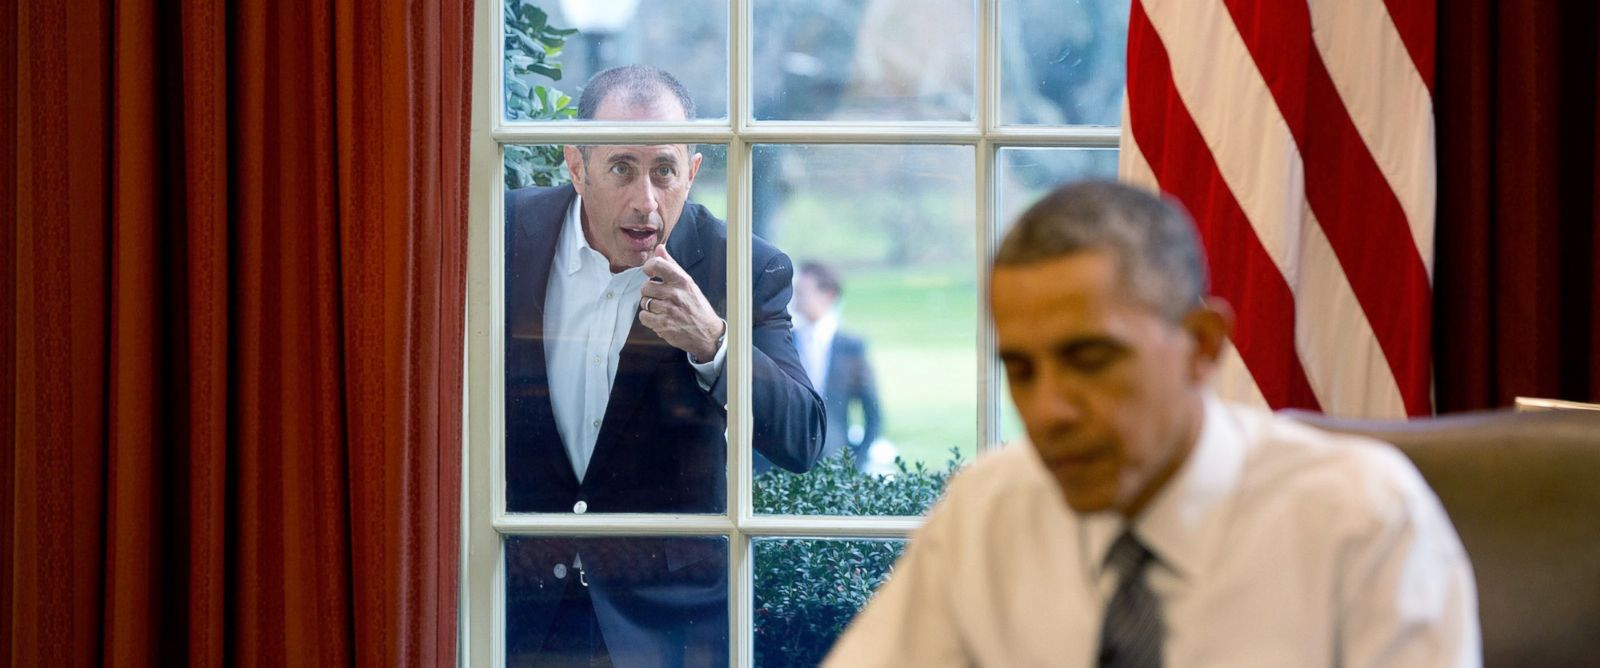 """PHOTO: Comedian Jerry Seinfeld knocks on the Oval Office window to begin a segment for his series, """"Comedians in Cars Getting Coffee,"""" Dec. 7, 2015."""